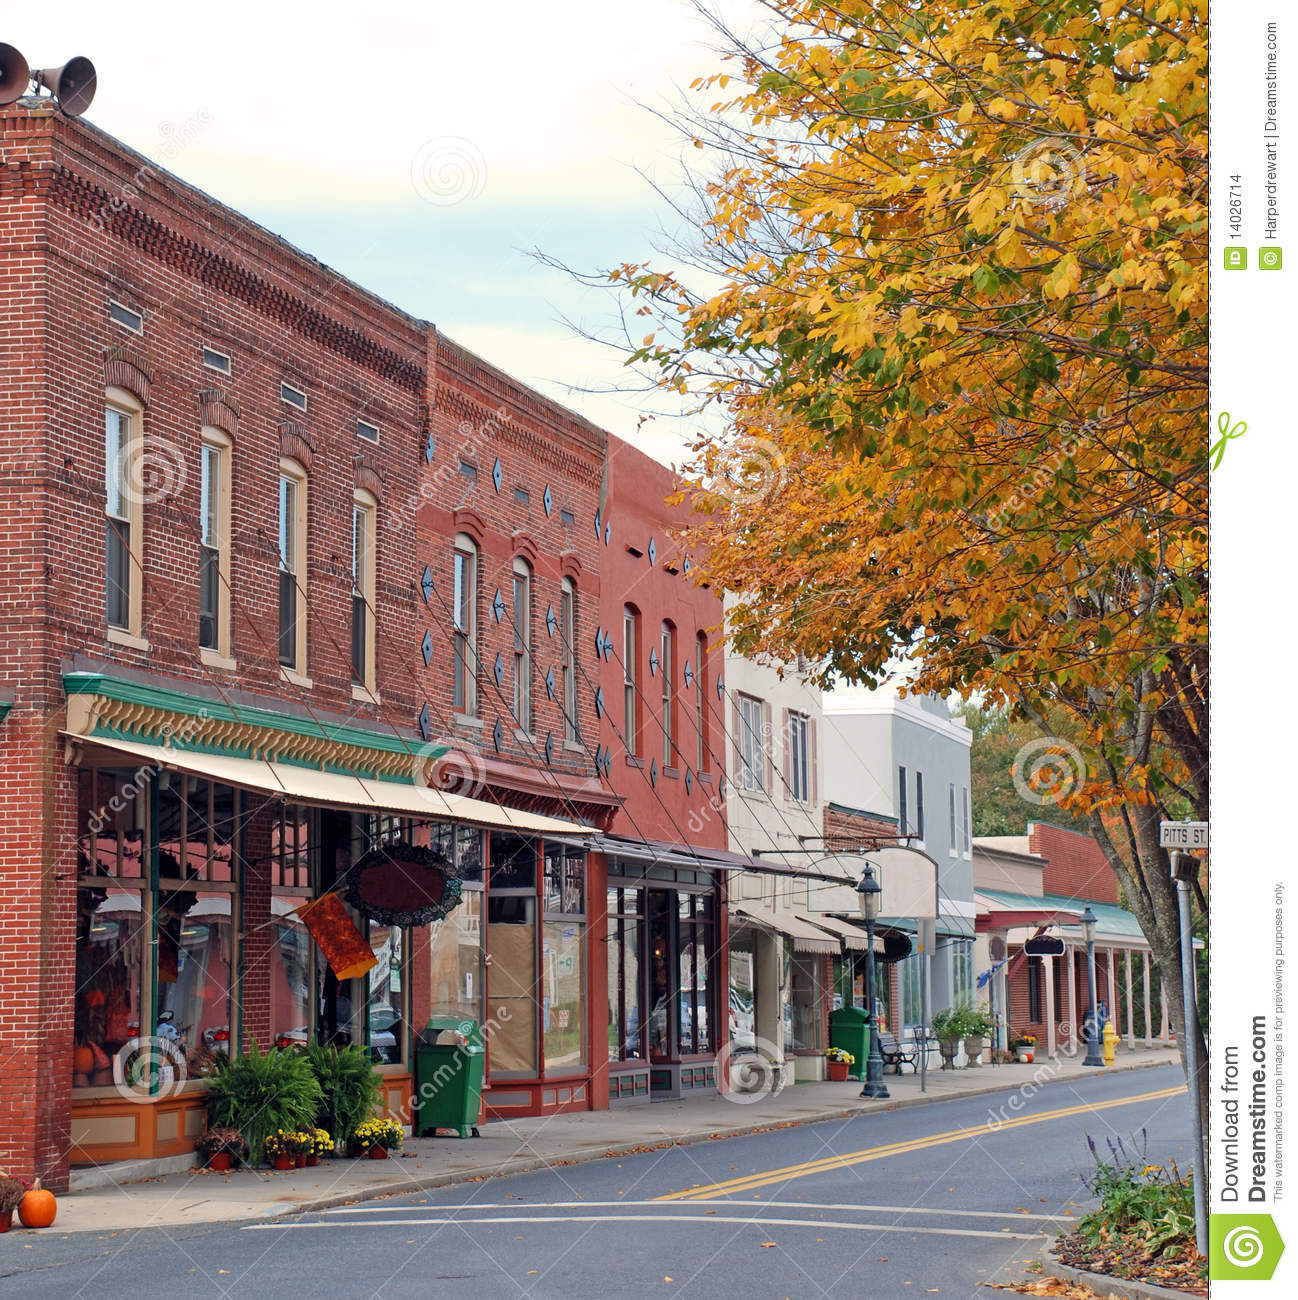 Small Town Main Street 1 Stock Images - Image: 14026714 Sims 1 Objects